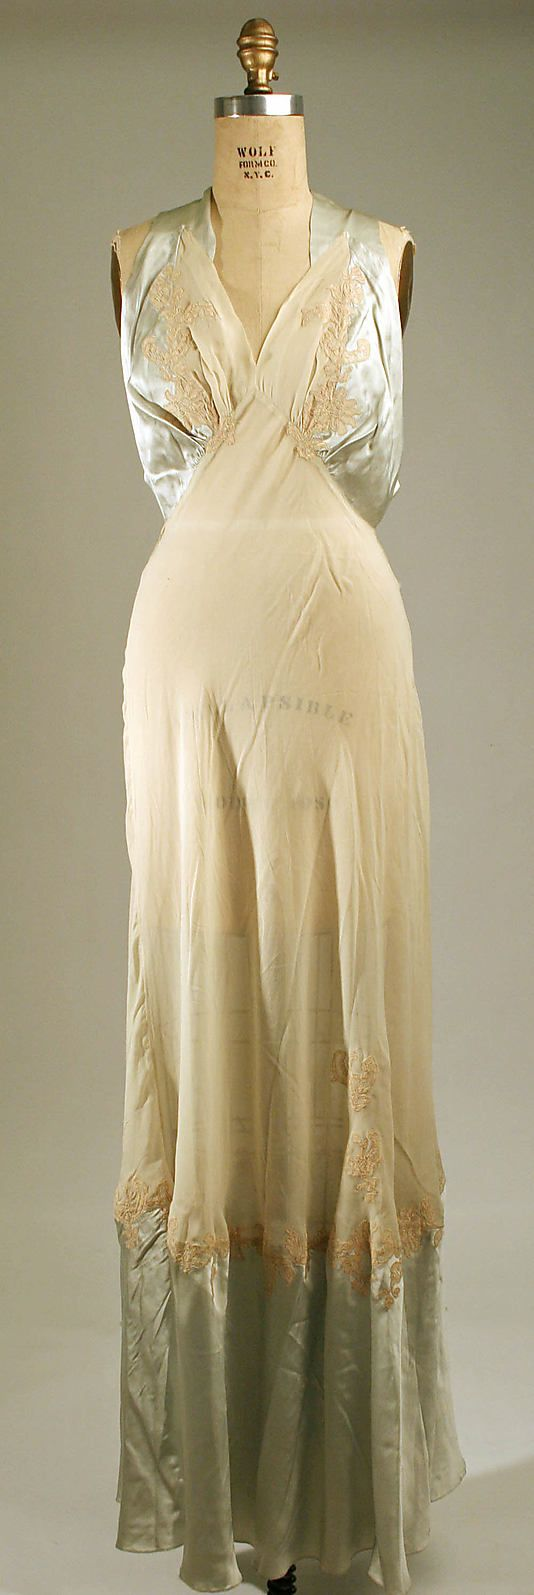 Nightgown 1940's